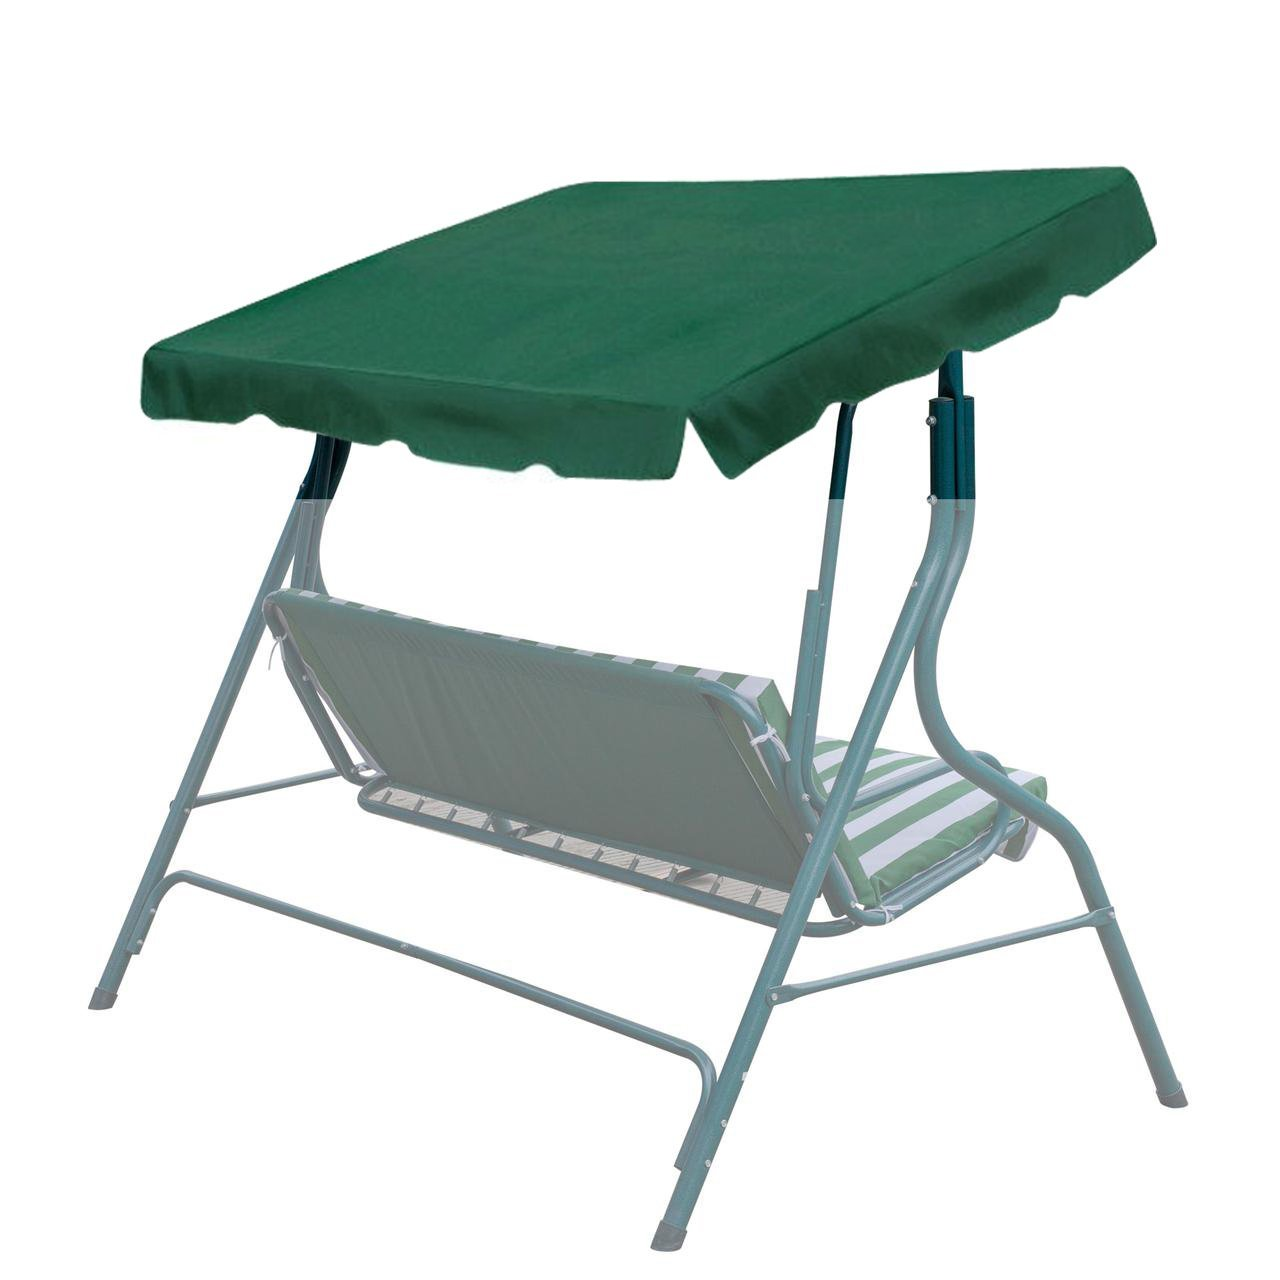 BenefitUSA Patio Outdoor 65''x45'' Swing Canopy Replacement Porch Top Cover Seat Furniture (Green) by BenefitUSA